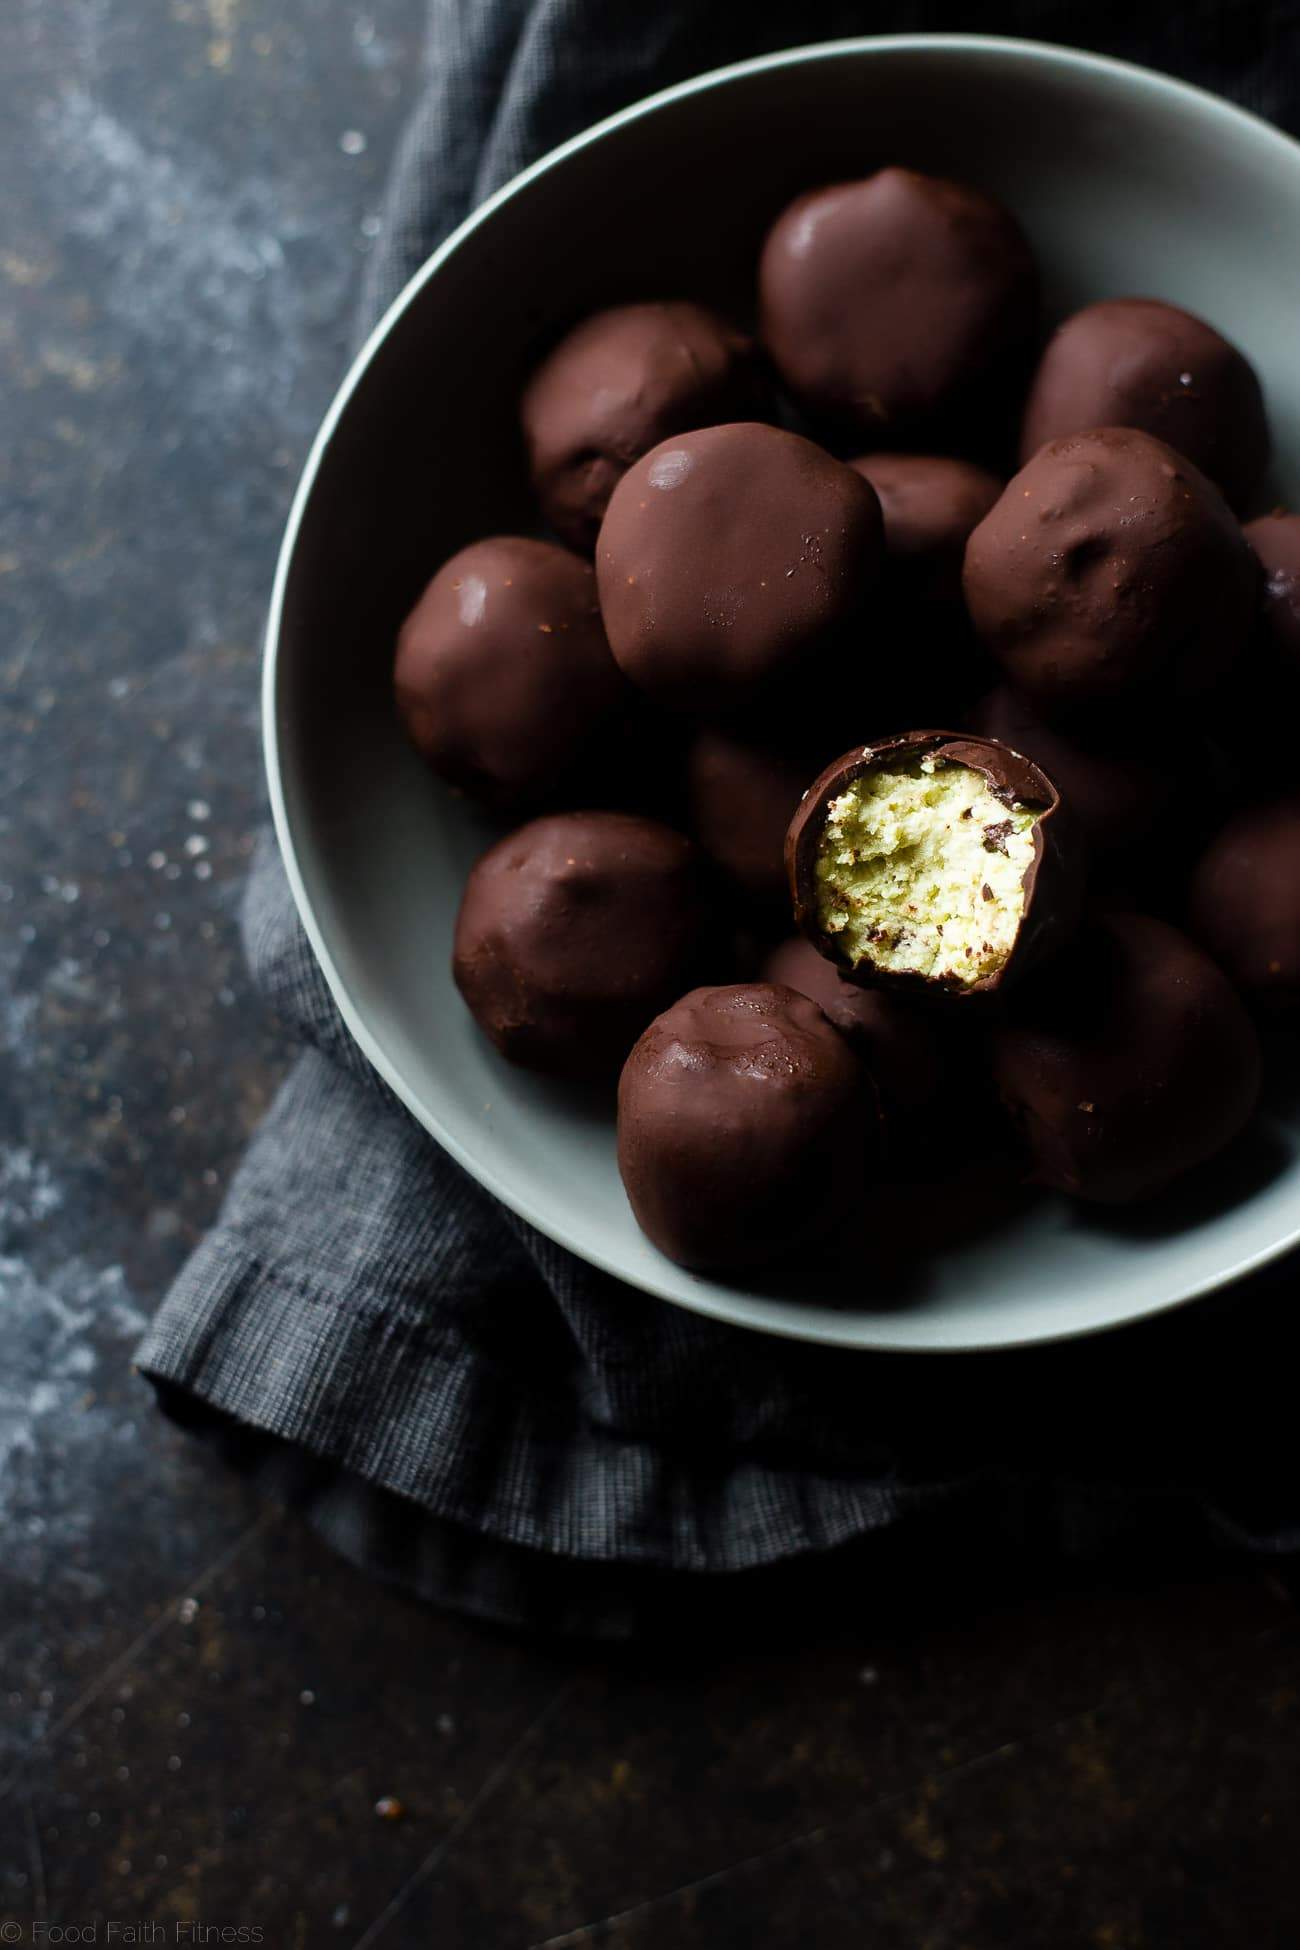 Mint Avocado Cheesecake Truffles - These low carb, protein-packed, creamy cheesecake truffles are covered in chocolate! They're a healthy, gluten free Christmas treat for only 90 calories! | Foodfaithfitness.com | @FoodFaithFit